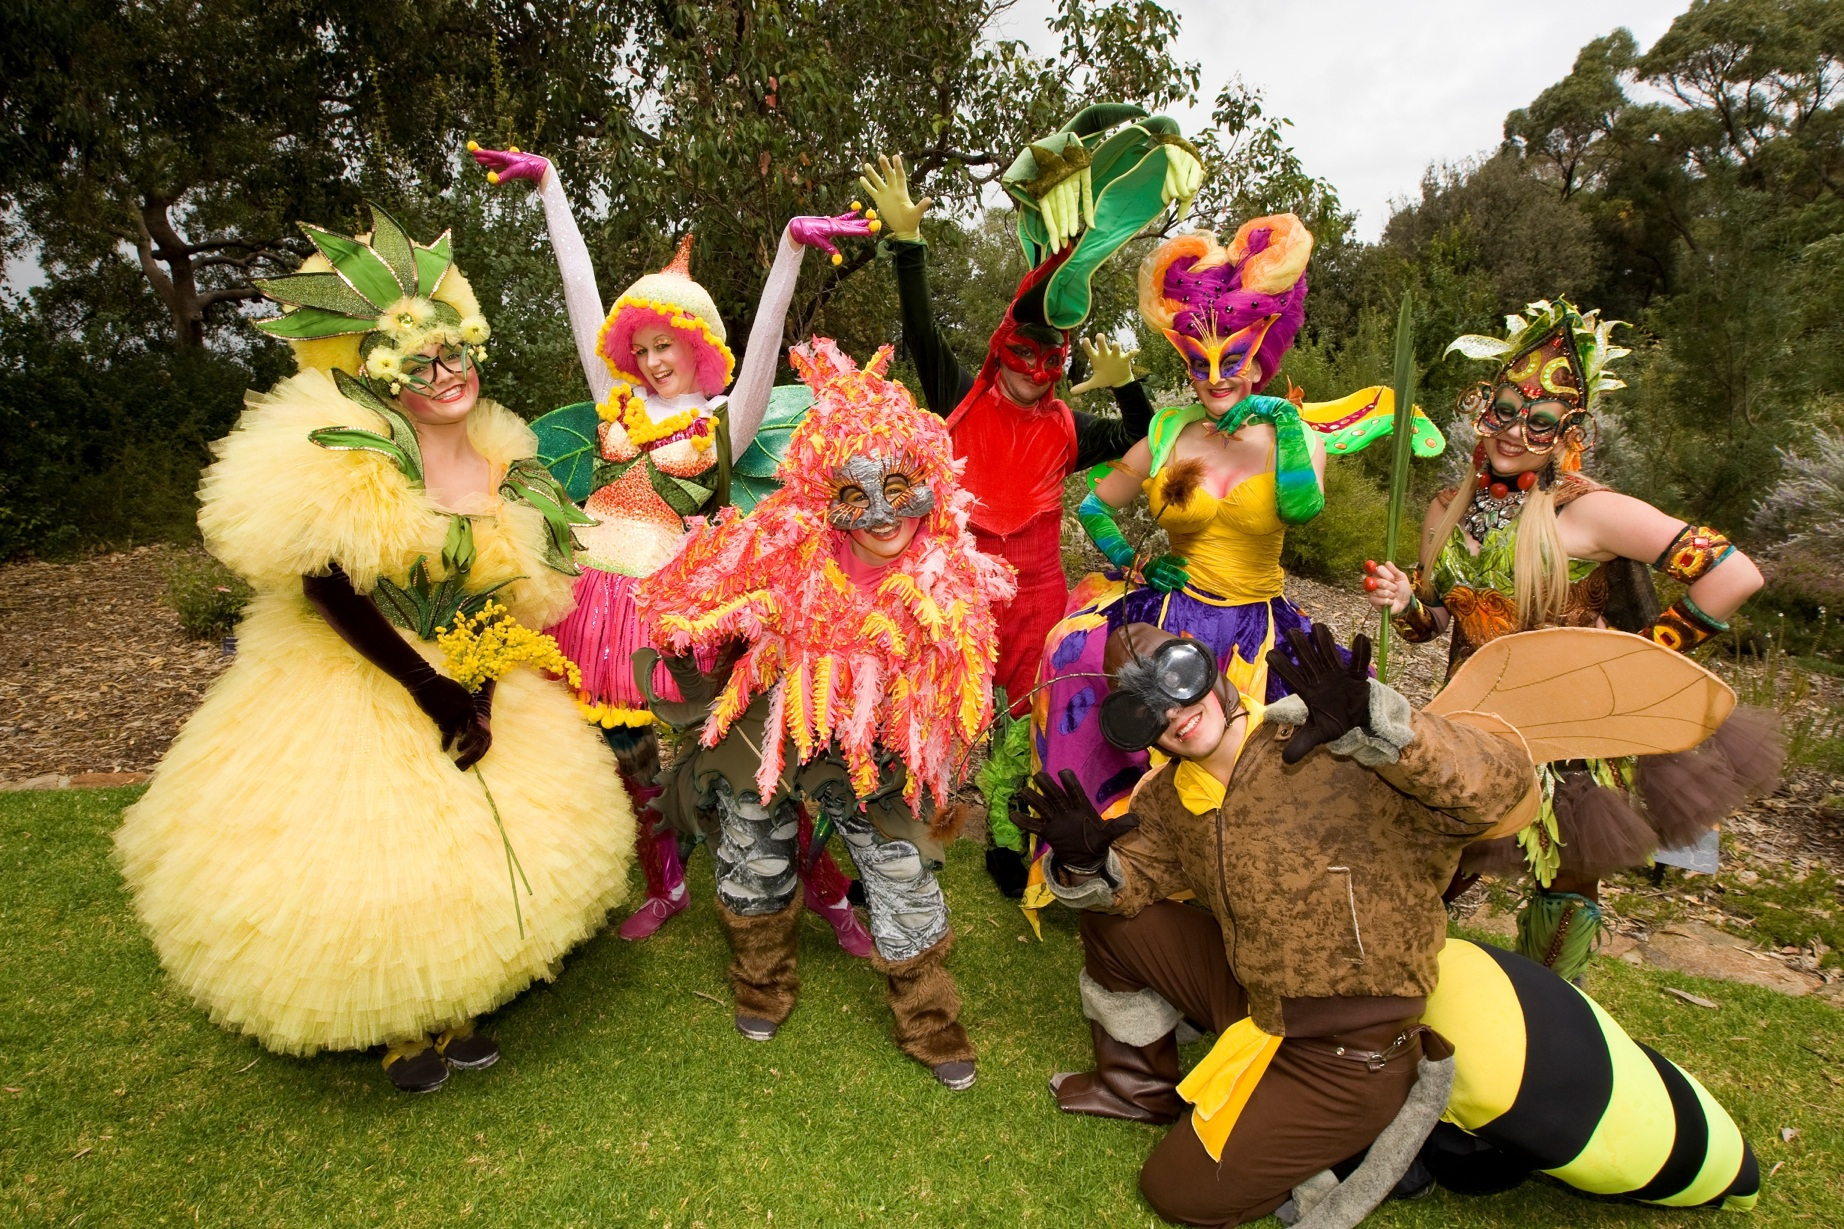 Cosplayers at the Kings Park Festival